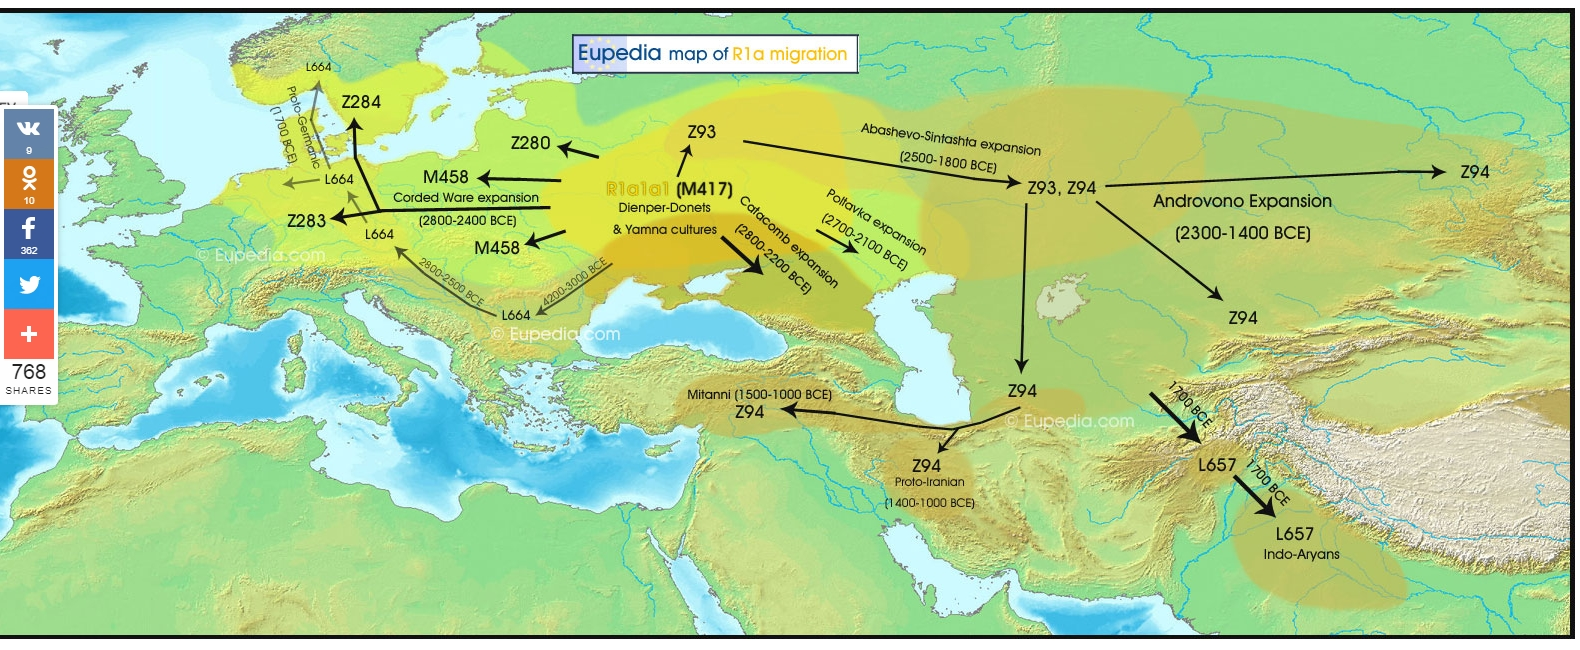 Migration_map_of_haplogroup_R1a_from_the_Neolithic_to_the_late_Bronze_Age__c__1000_BCE_.jpg